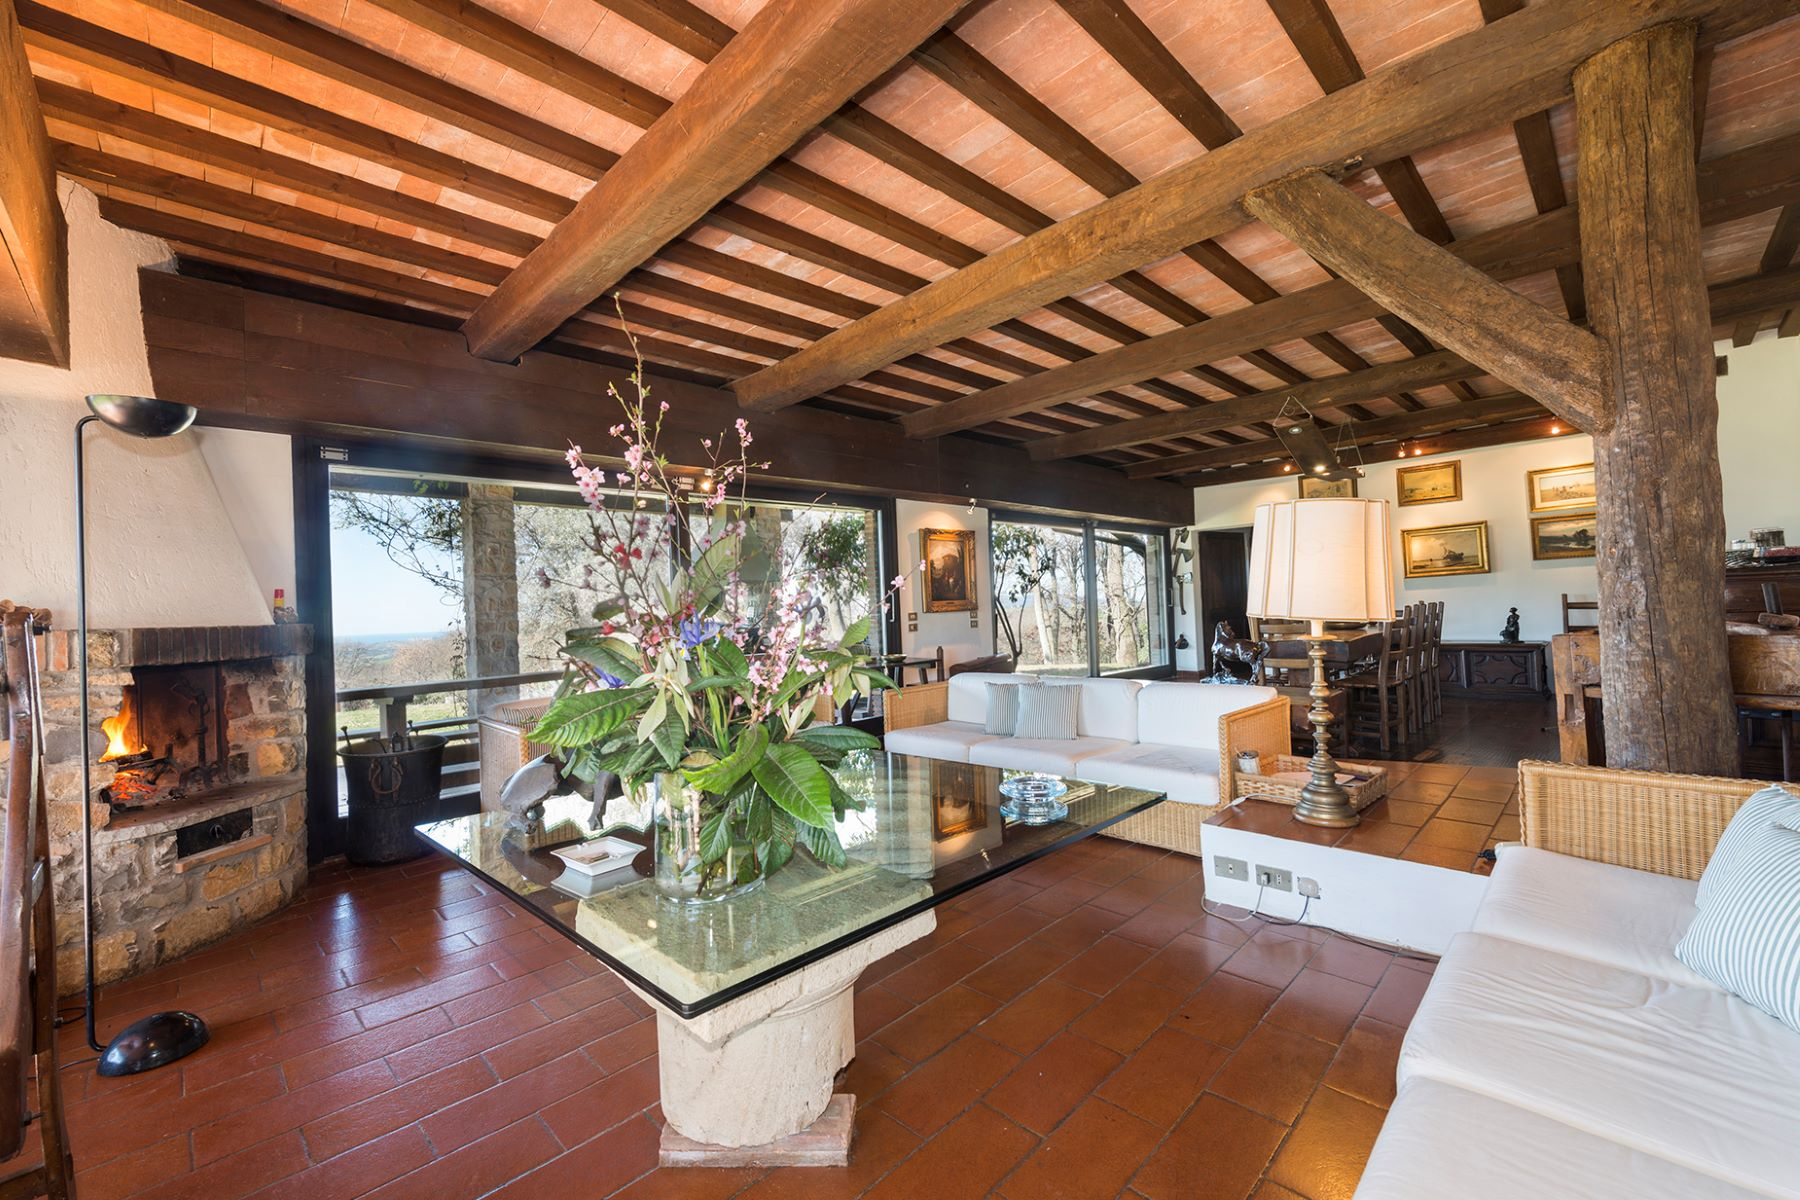 Single Family Home for Sale at Beautiful villa with breath taking sea vistas of Monte Argentario Strada La Capitana Magliano In Toscana, 58051 Italy